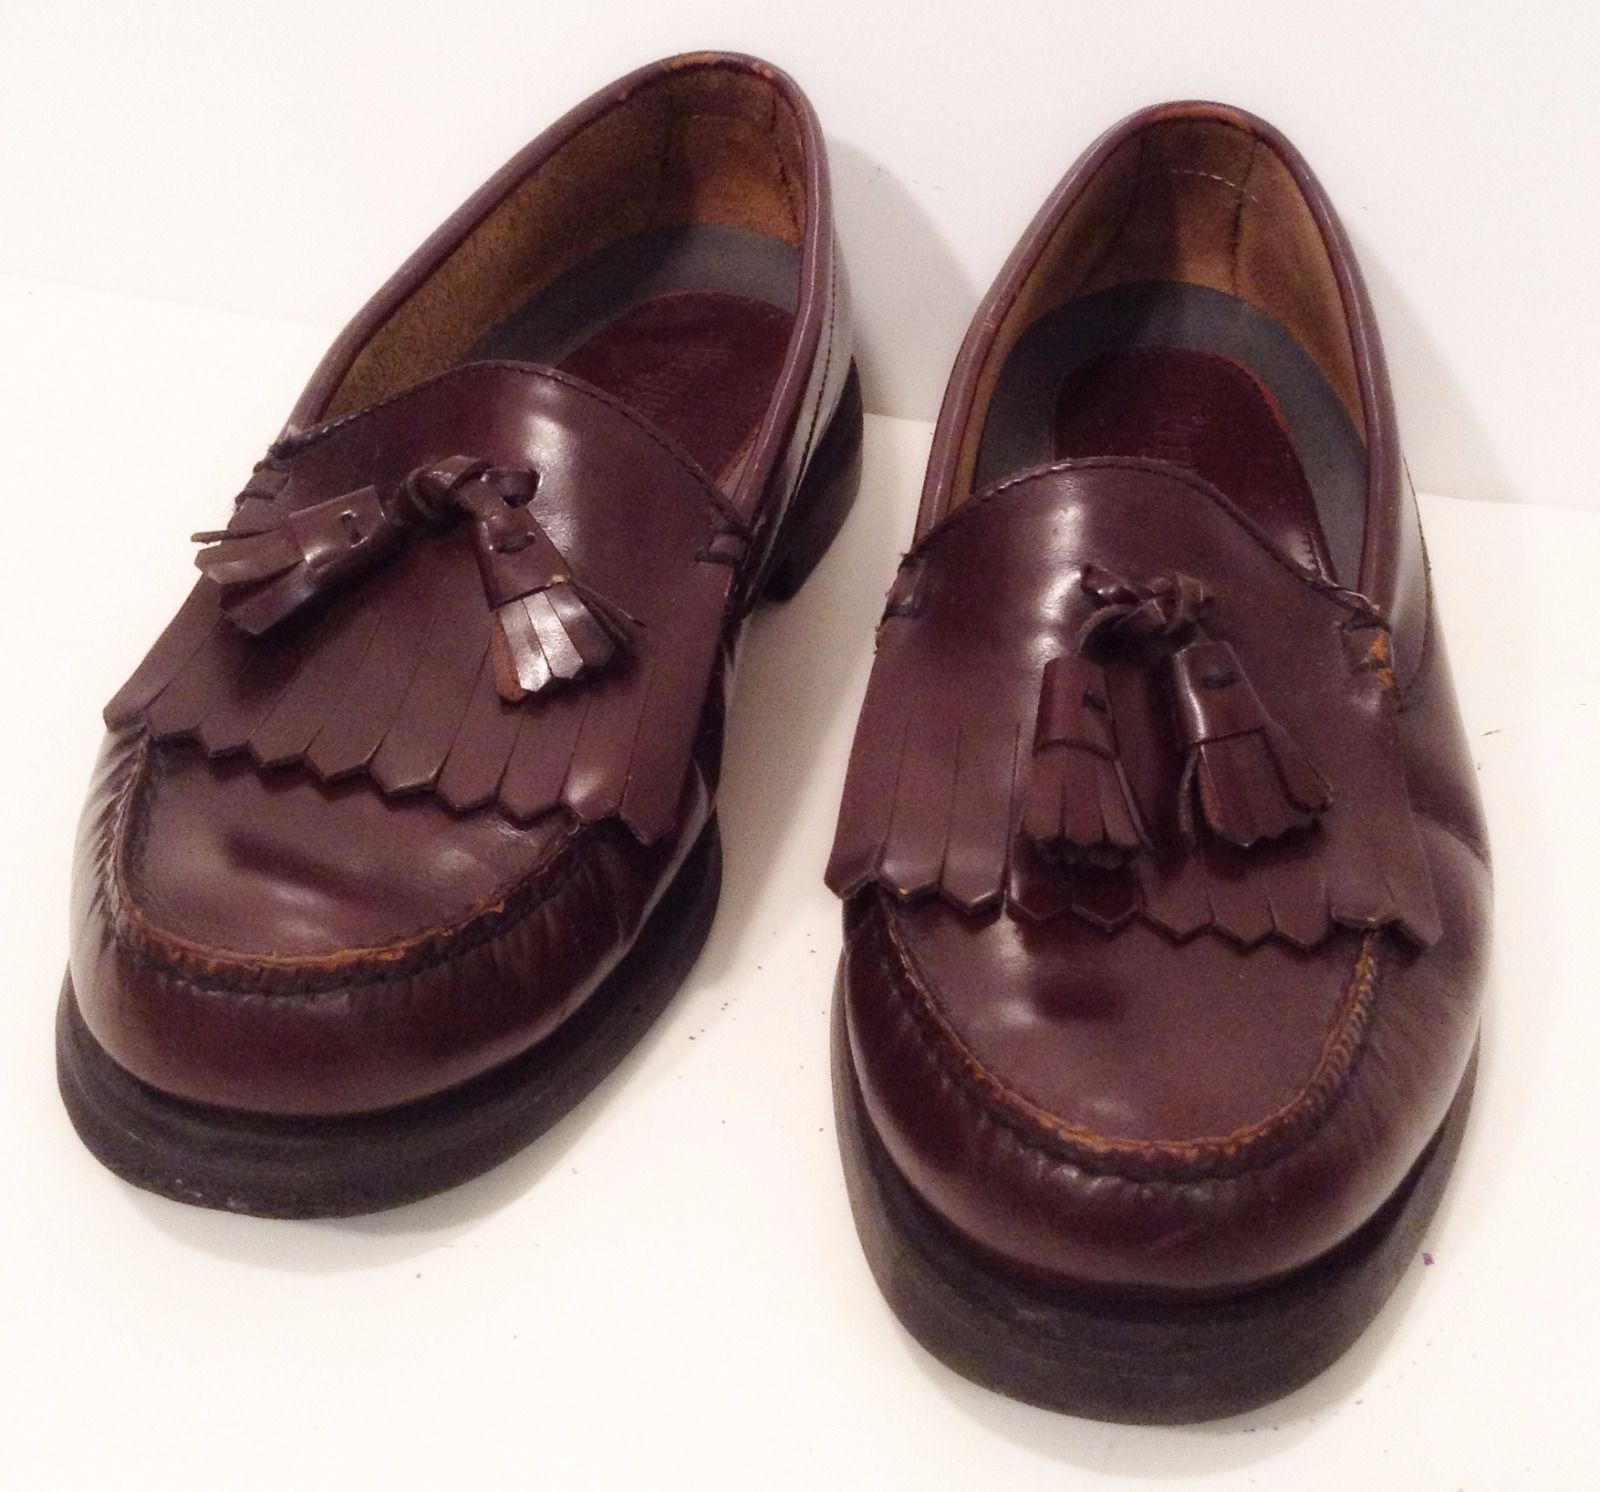 9a0058137c8 Bass Weejuns Heritage Collection G H Bass Kiltie Tassle Loafers 8.5 M VG